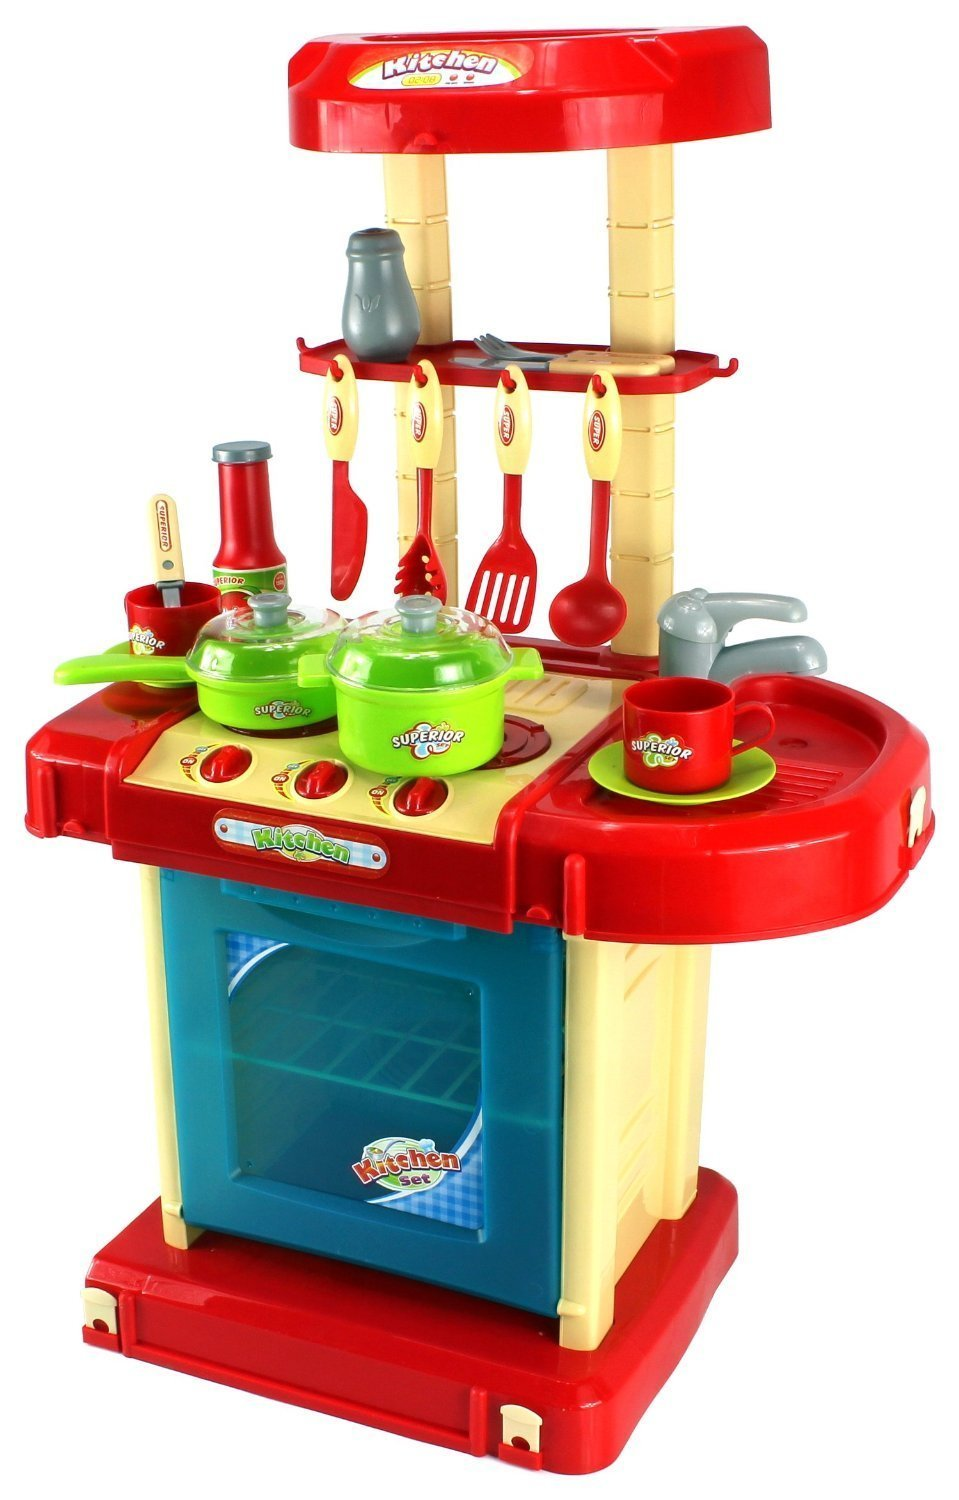 amazoncom gt super kitchen children's kid's pretend play toy  - amazoncom gt super kitchen children's kid's pretend play toy kitchenplayset w pot pan utensils lights sounds toys  games